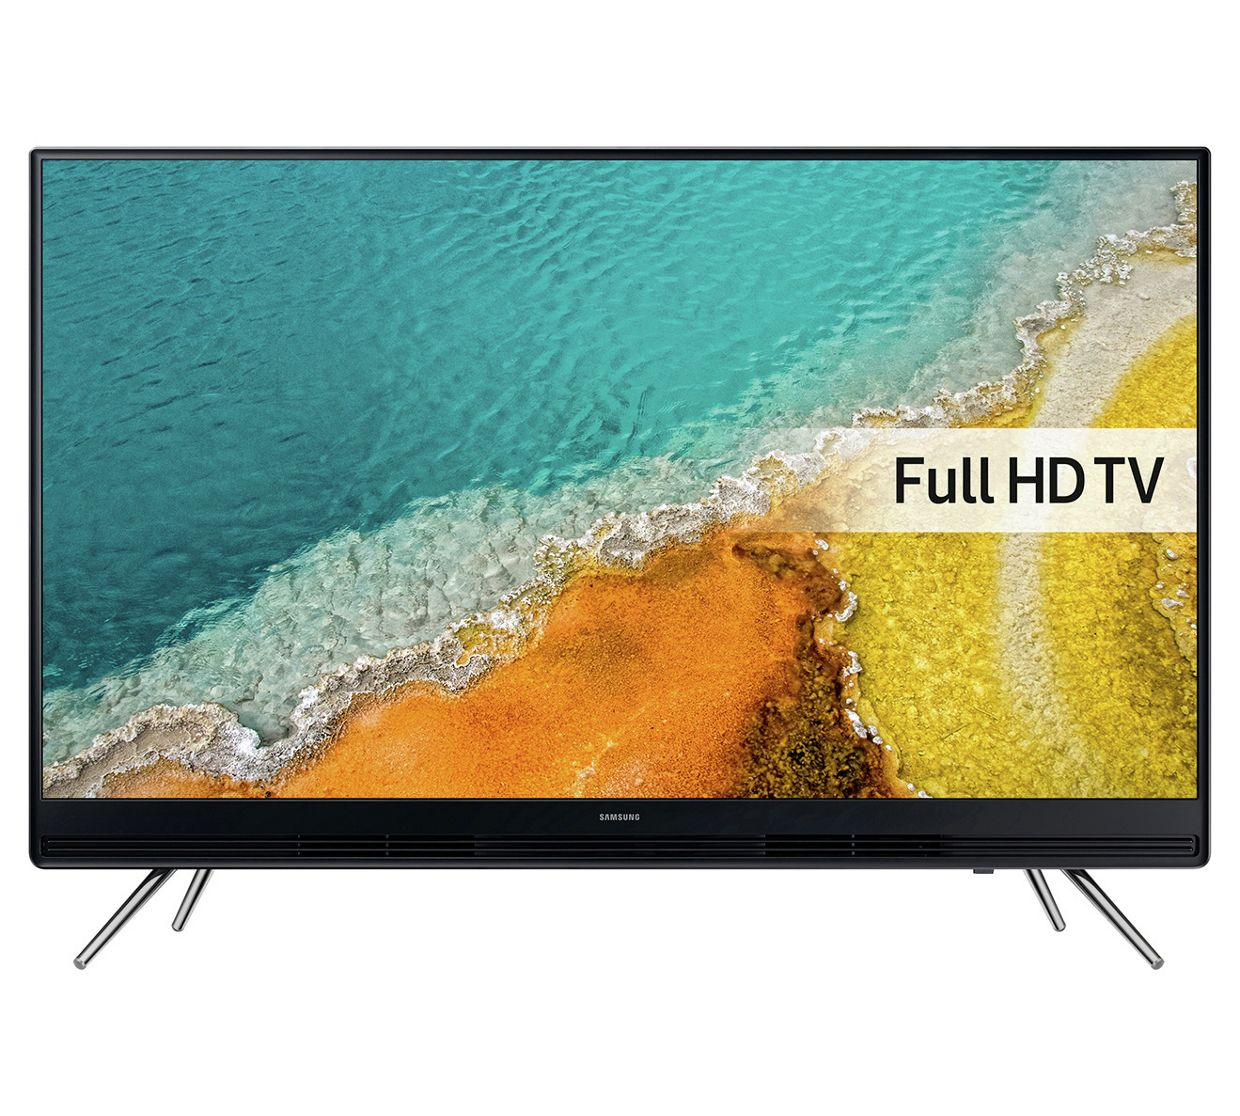 Black Friday UK Televisions Deals And Discounts